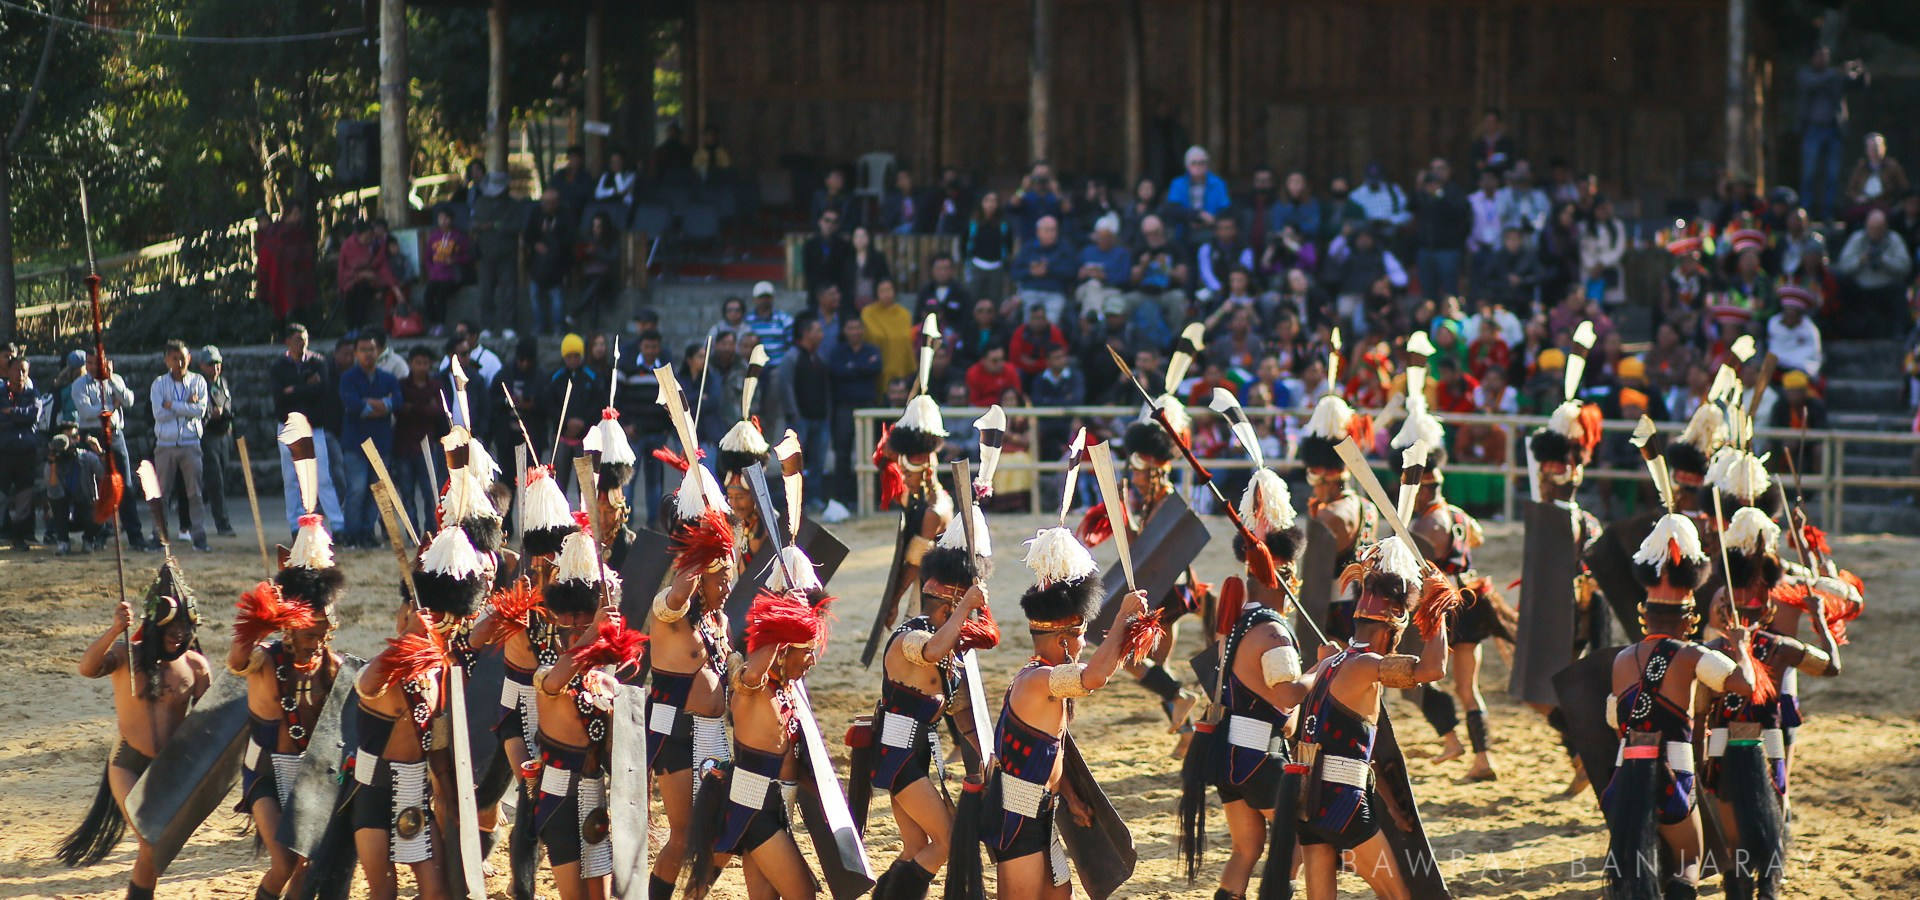 Experiencing the vibrant colors at Hornbill is among the best things to do in Nagaland